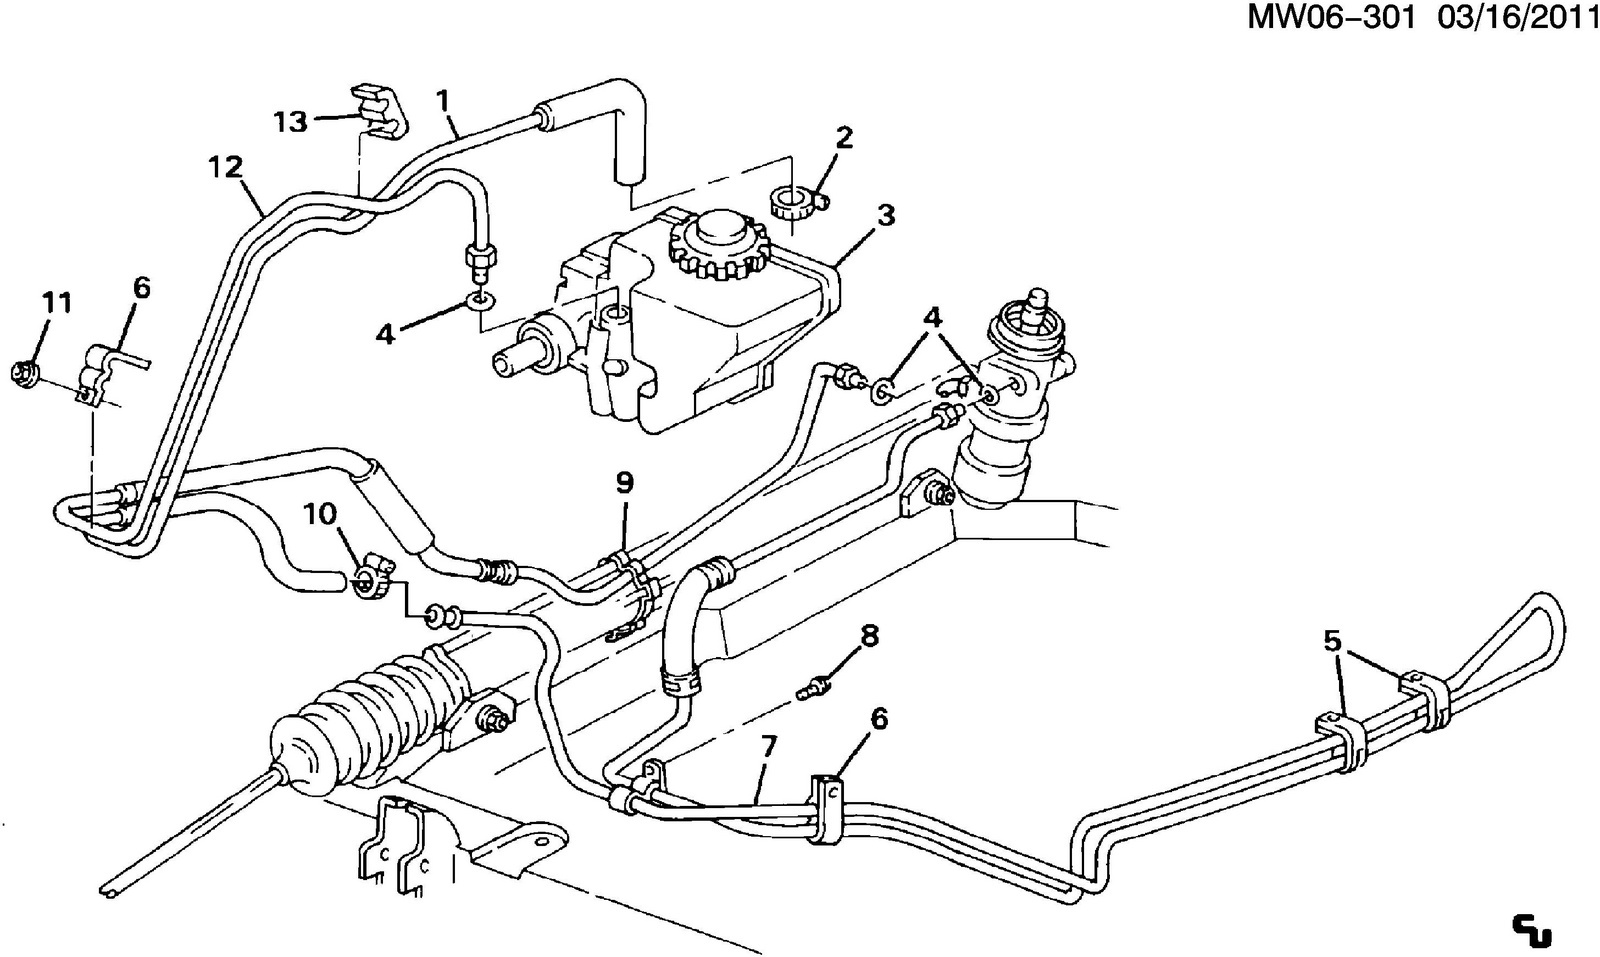 ponents Ftt further Toyota 3vze Timing Belt Diagram moreover 2002 Jeep Liberty Blend Door Actuator Location together with Expansion Valve Location 66370 also 2001 Toyota Camry Engine Diagram. on 2003 toyota camry vacuum diagram